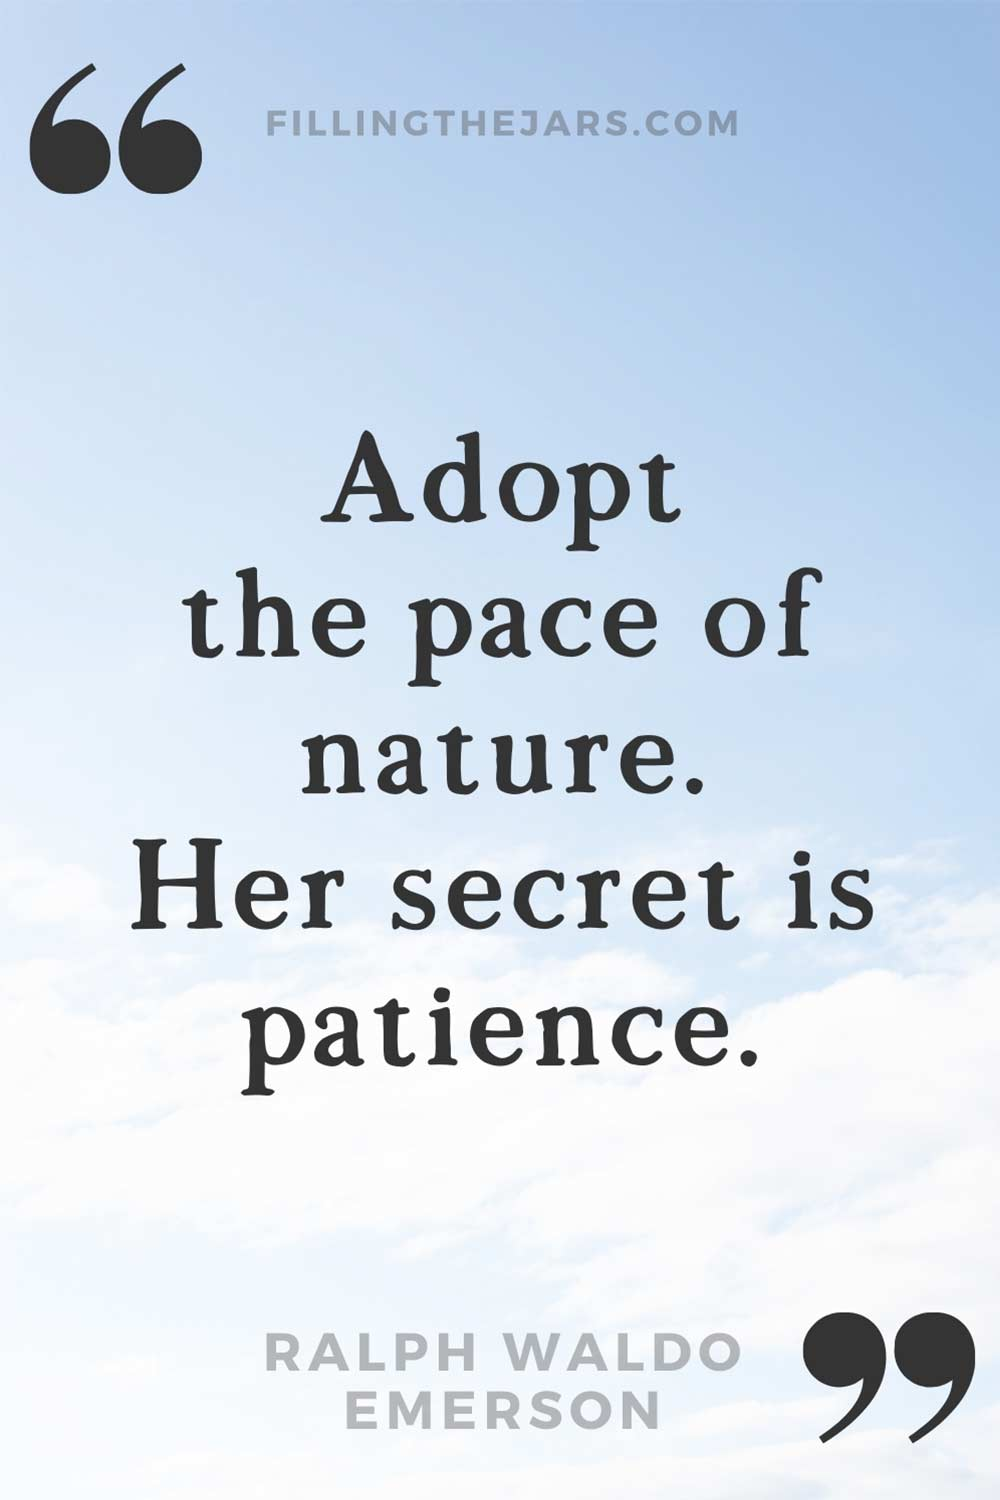 Ralph Waldo Emerson adopt the pace of nature quote in black text on daytime partly cloudy sky background.